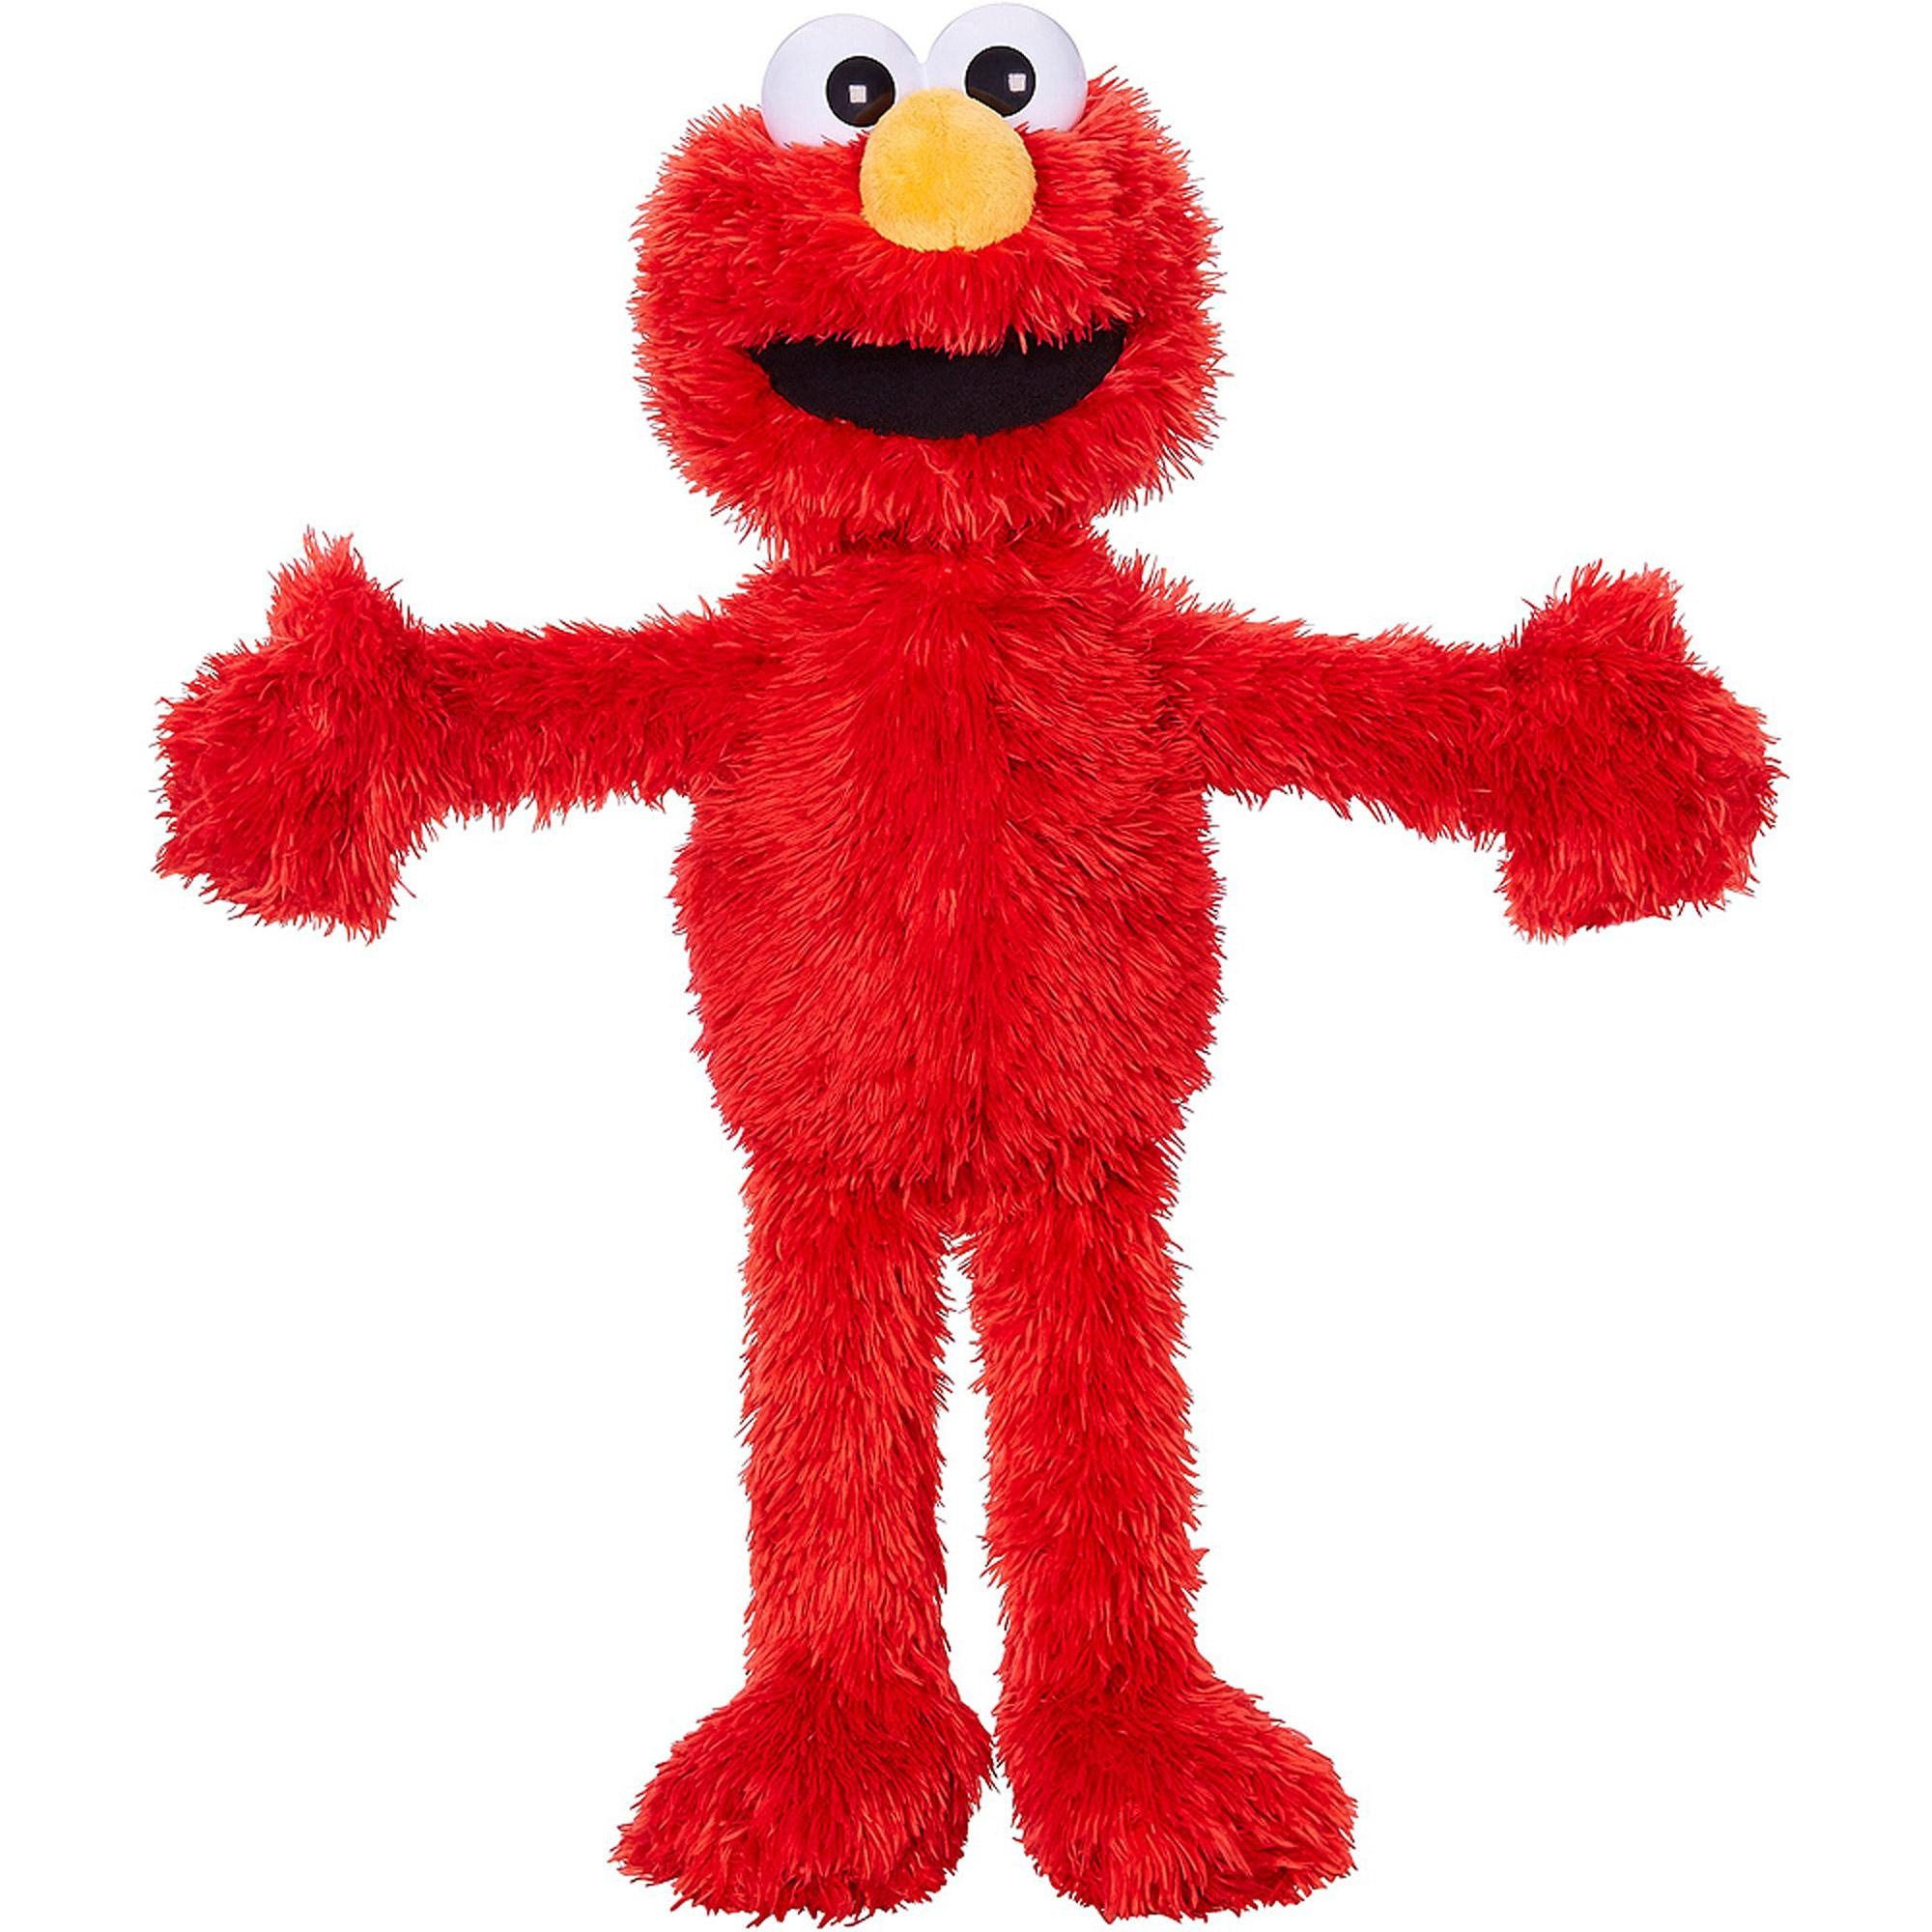 Elmo Wallpaper Hd Toy Elmo Sesame Street 2021127 Hd